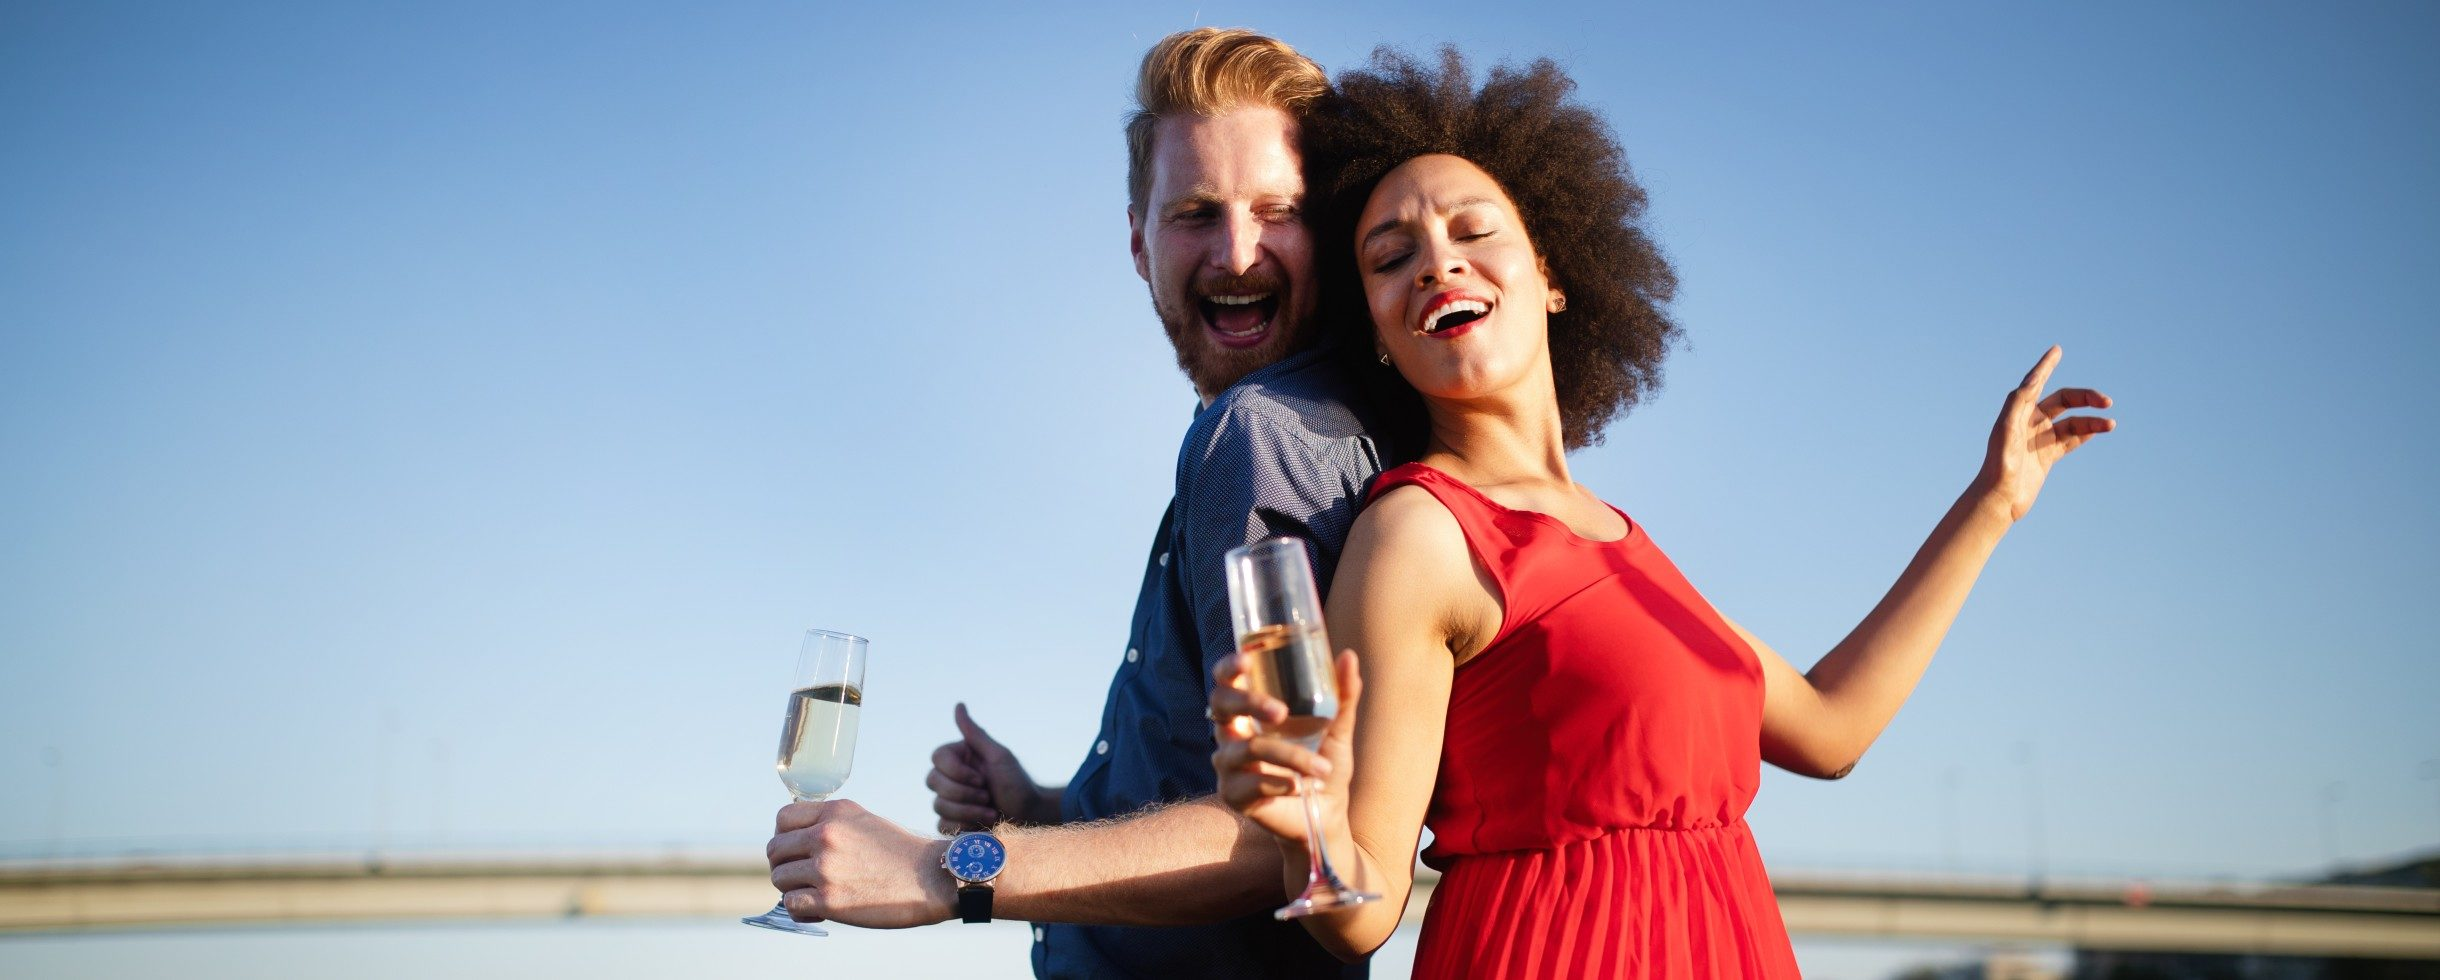 smiling couple in love holding champagne glasses